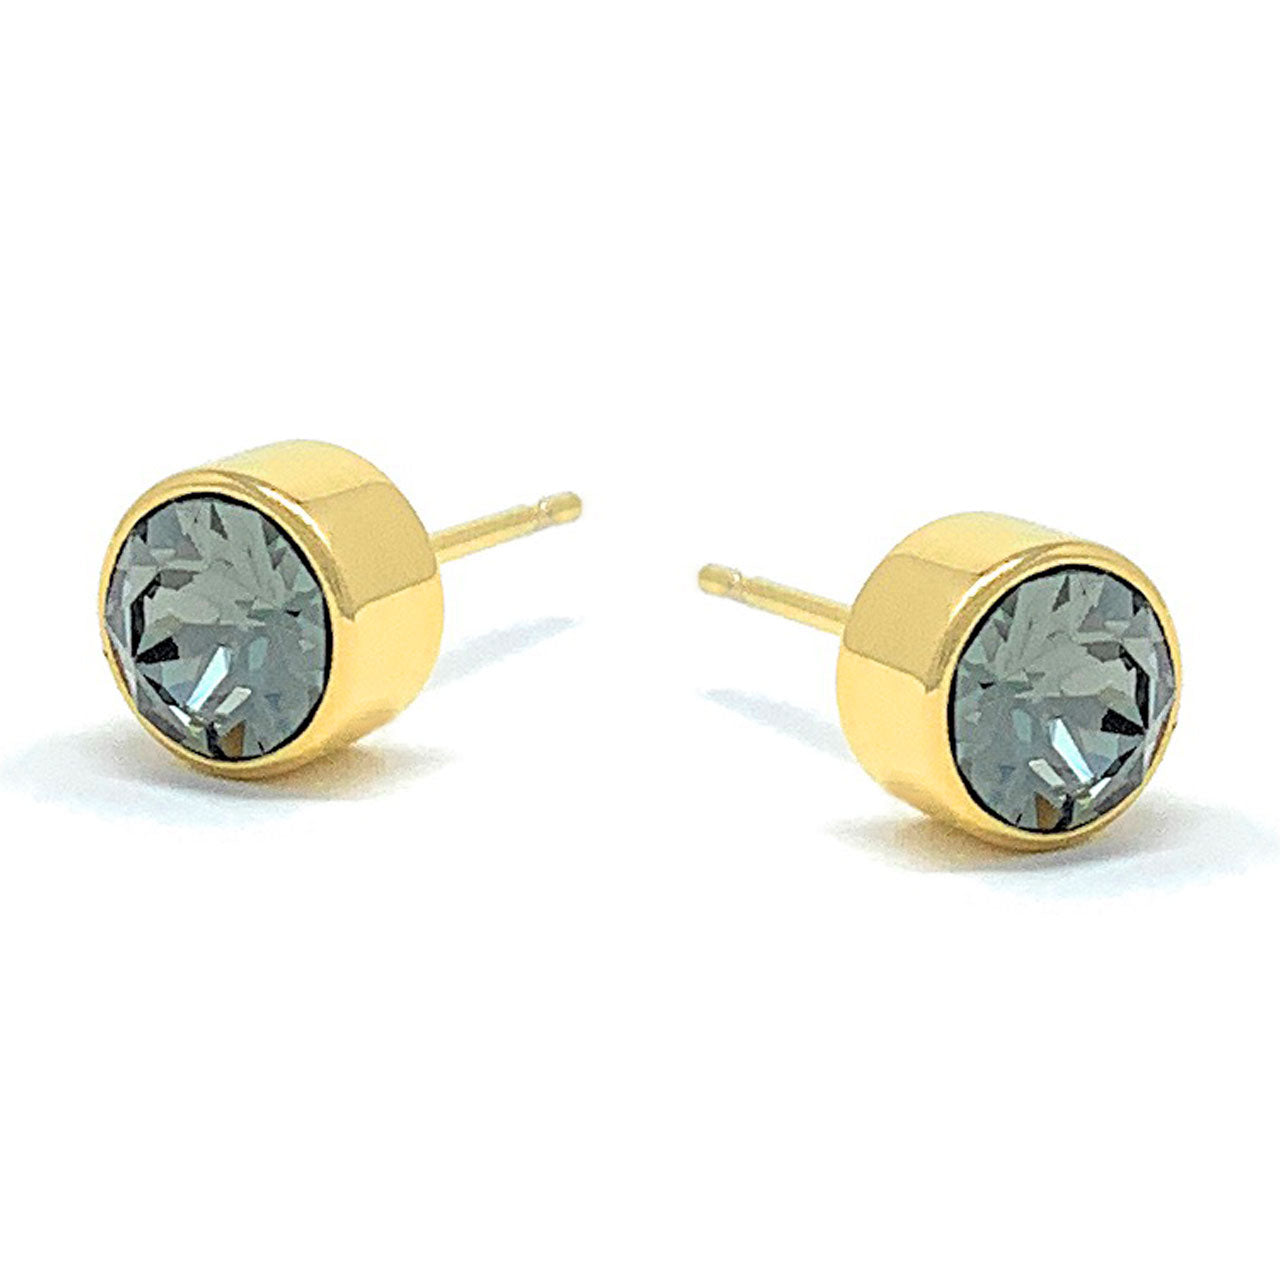 1a8932e28dbfb Harley Small Stud Earrings with Black Diamond Round Crystals from Swarovski  Gold Plated